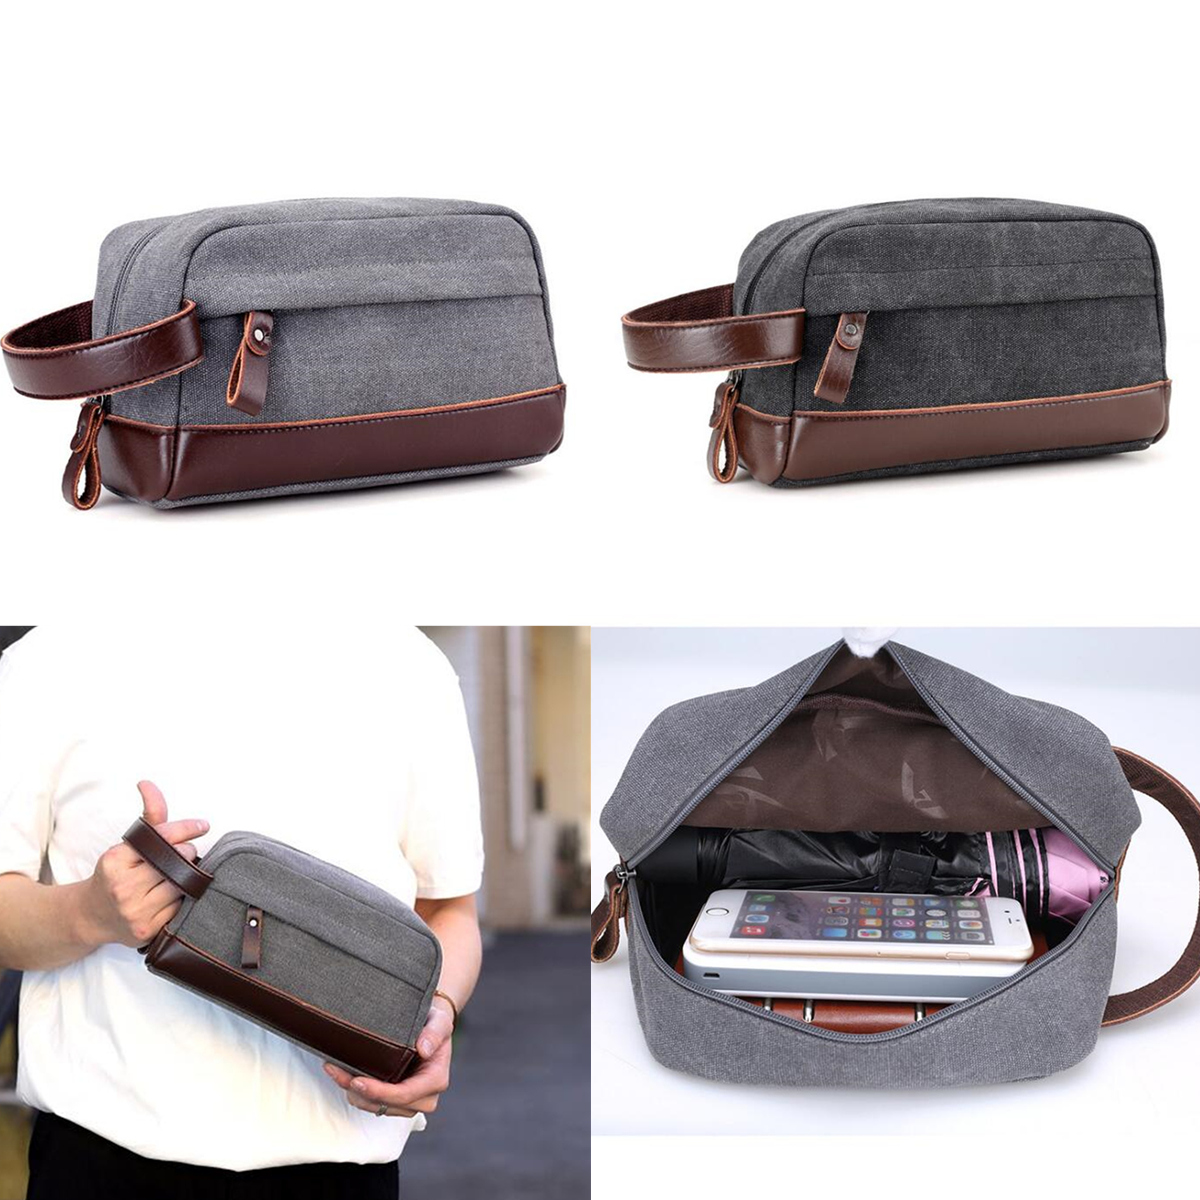 Specifications: Item Type: Handbags Pattern Type: Patchwork Main Material: Canvas Style: Casual Closure Type: Zipper Shape:Clutch Model Number: Men Clutch Bag Hardness: Soft Interior:Cell Phone Pocket,Interior Zipper Pocket,Interior Slot Pocket Handbags T #handbag